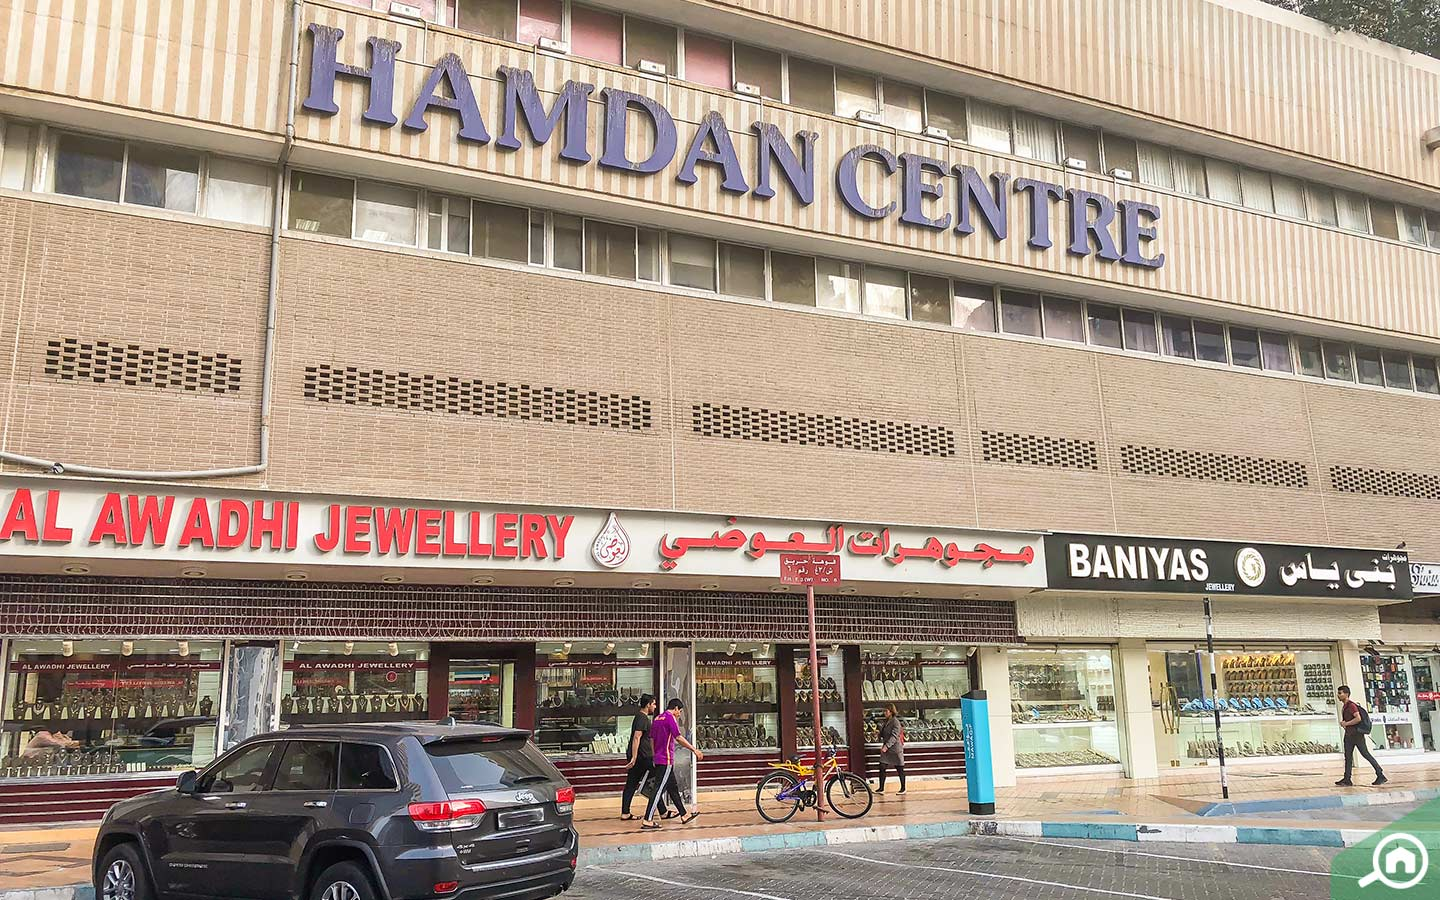 Hamdan Centre Shopping Mall